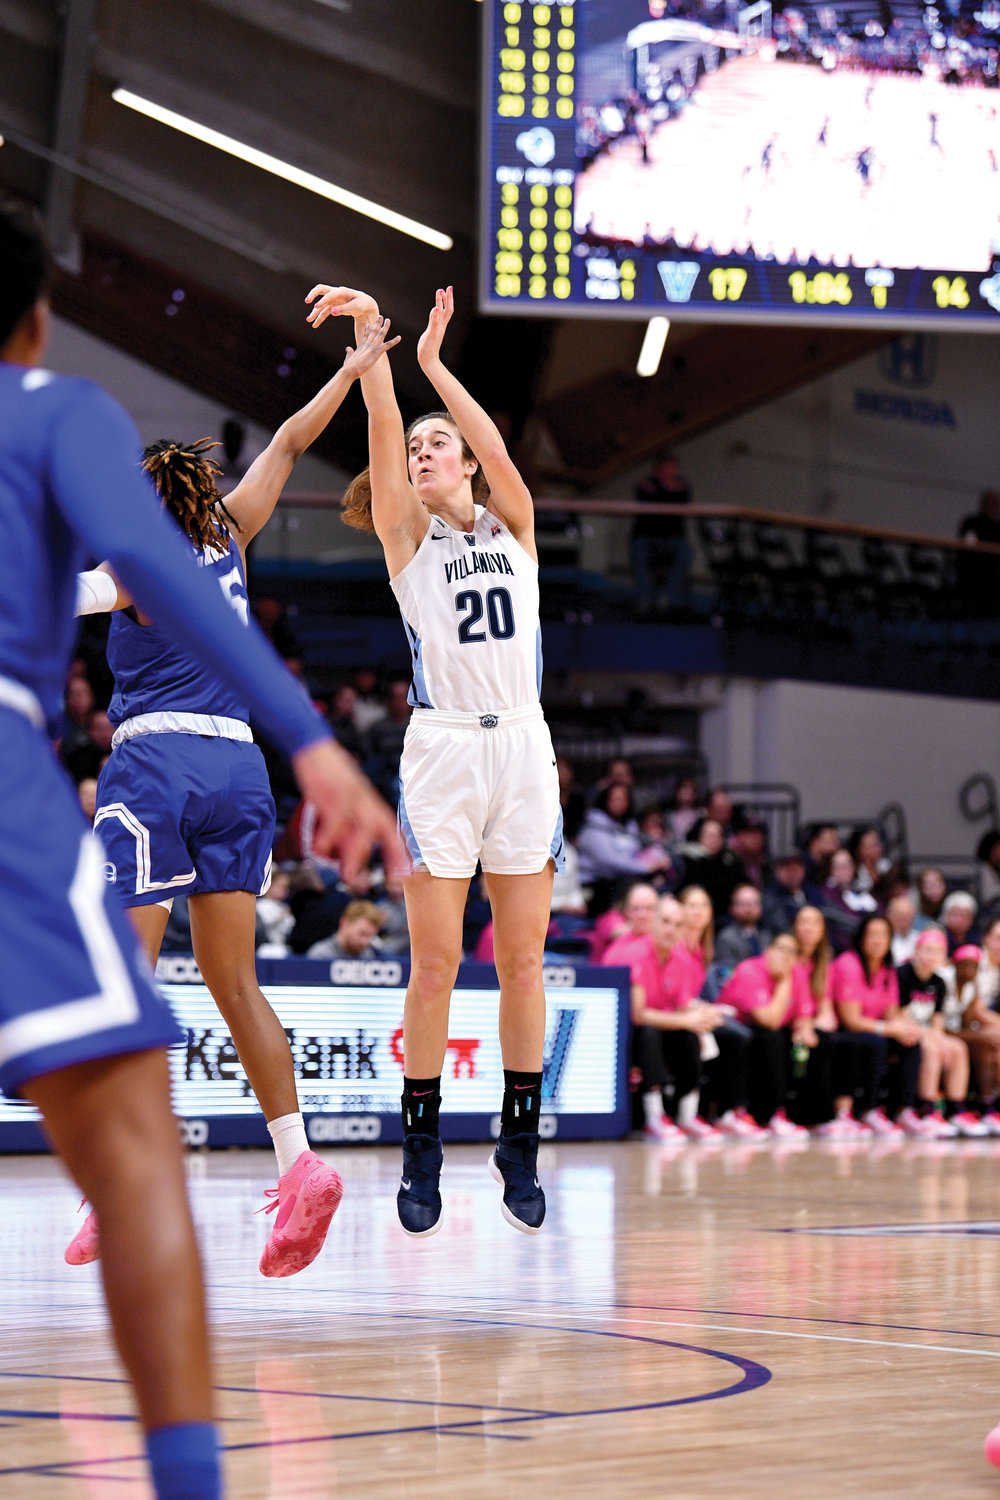 Villanova's Maddy Siegrist follows through on a jump shot during a Big East Conference game against Seton Hall Feb. 2. The Our Lady of Lourdes High School graduate was named Freshman of the Year in the Big East Conference.